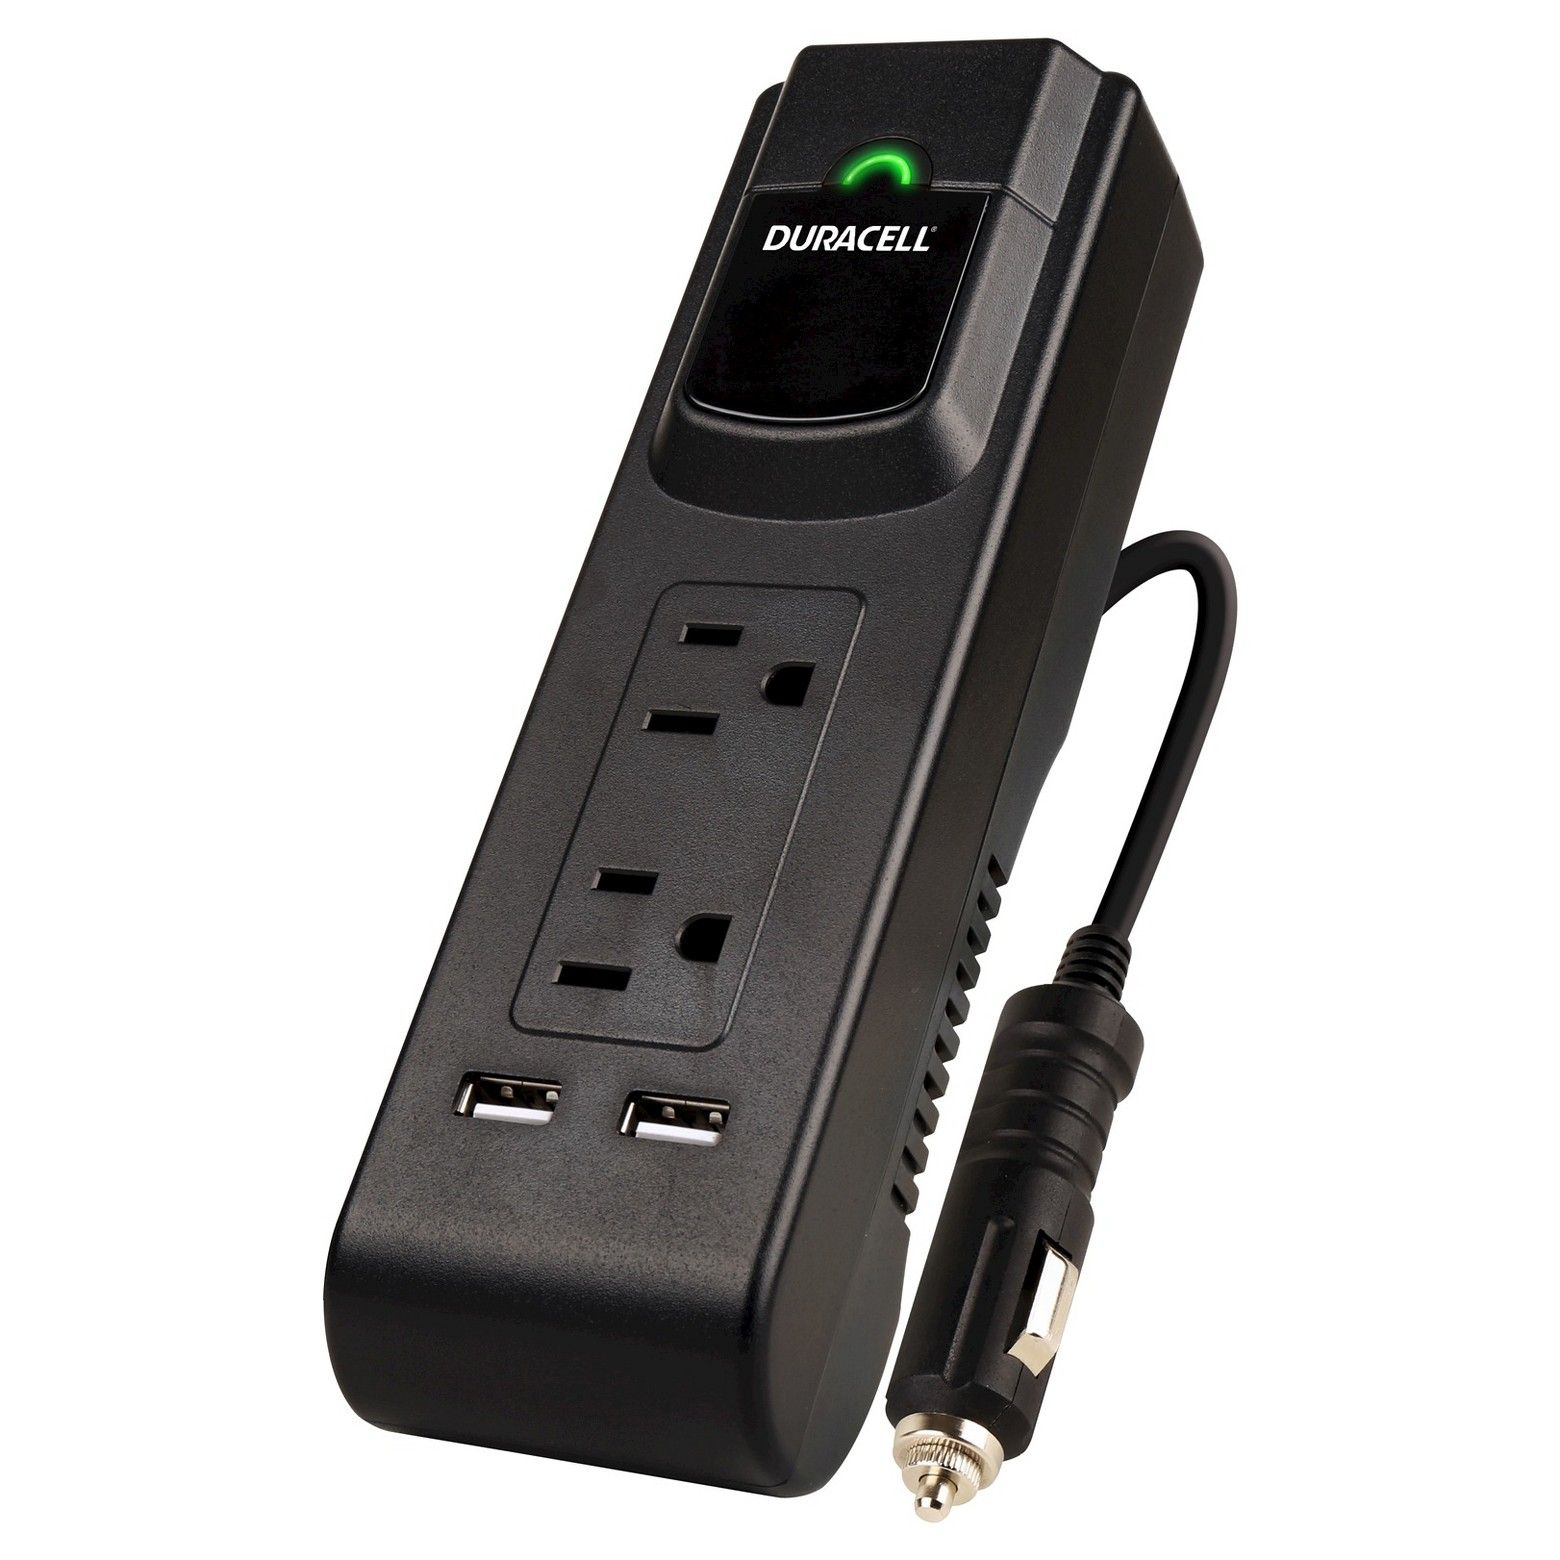 The Duracell 175Watt Powerstrip inverter converts your